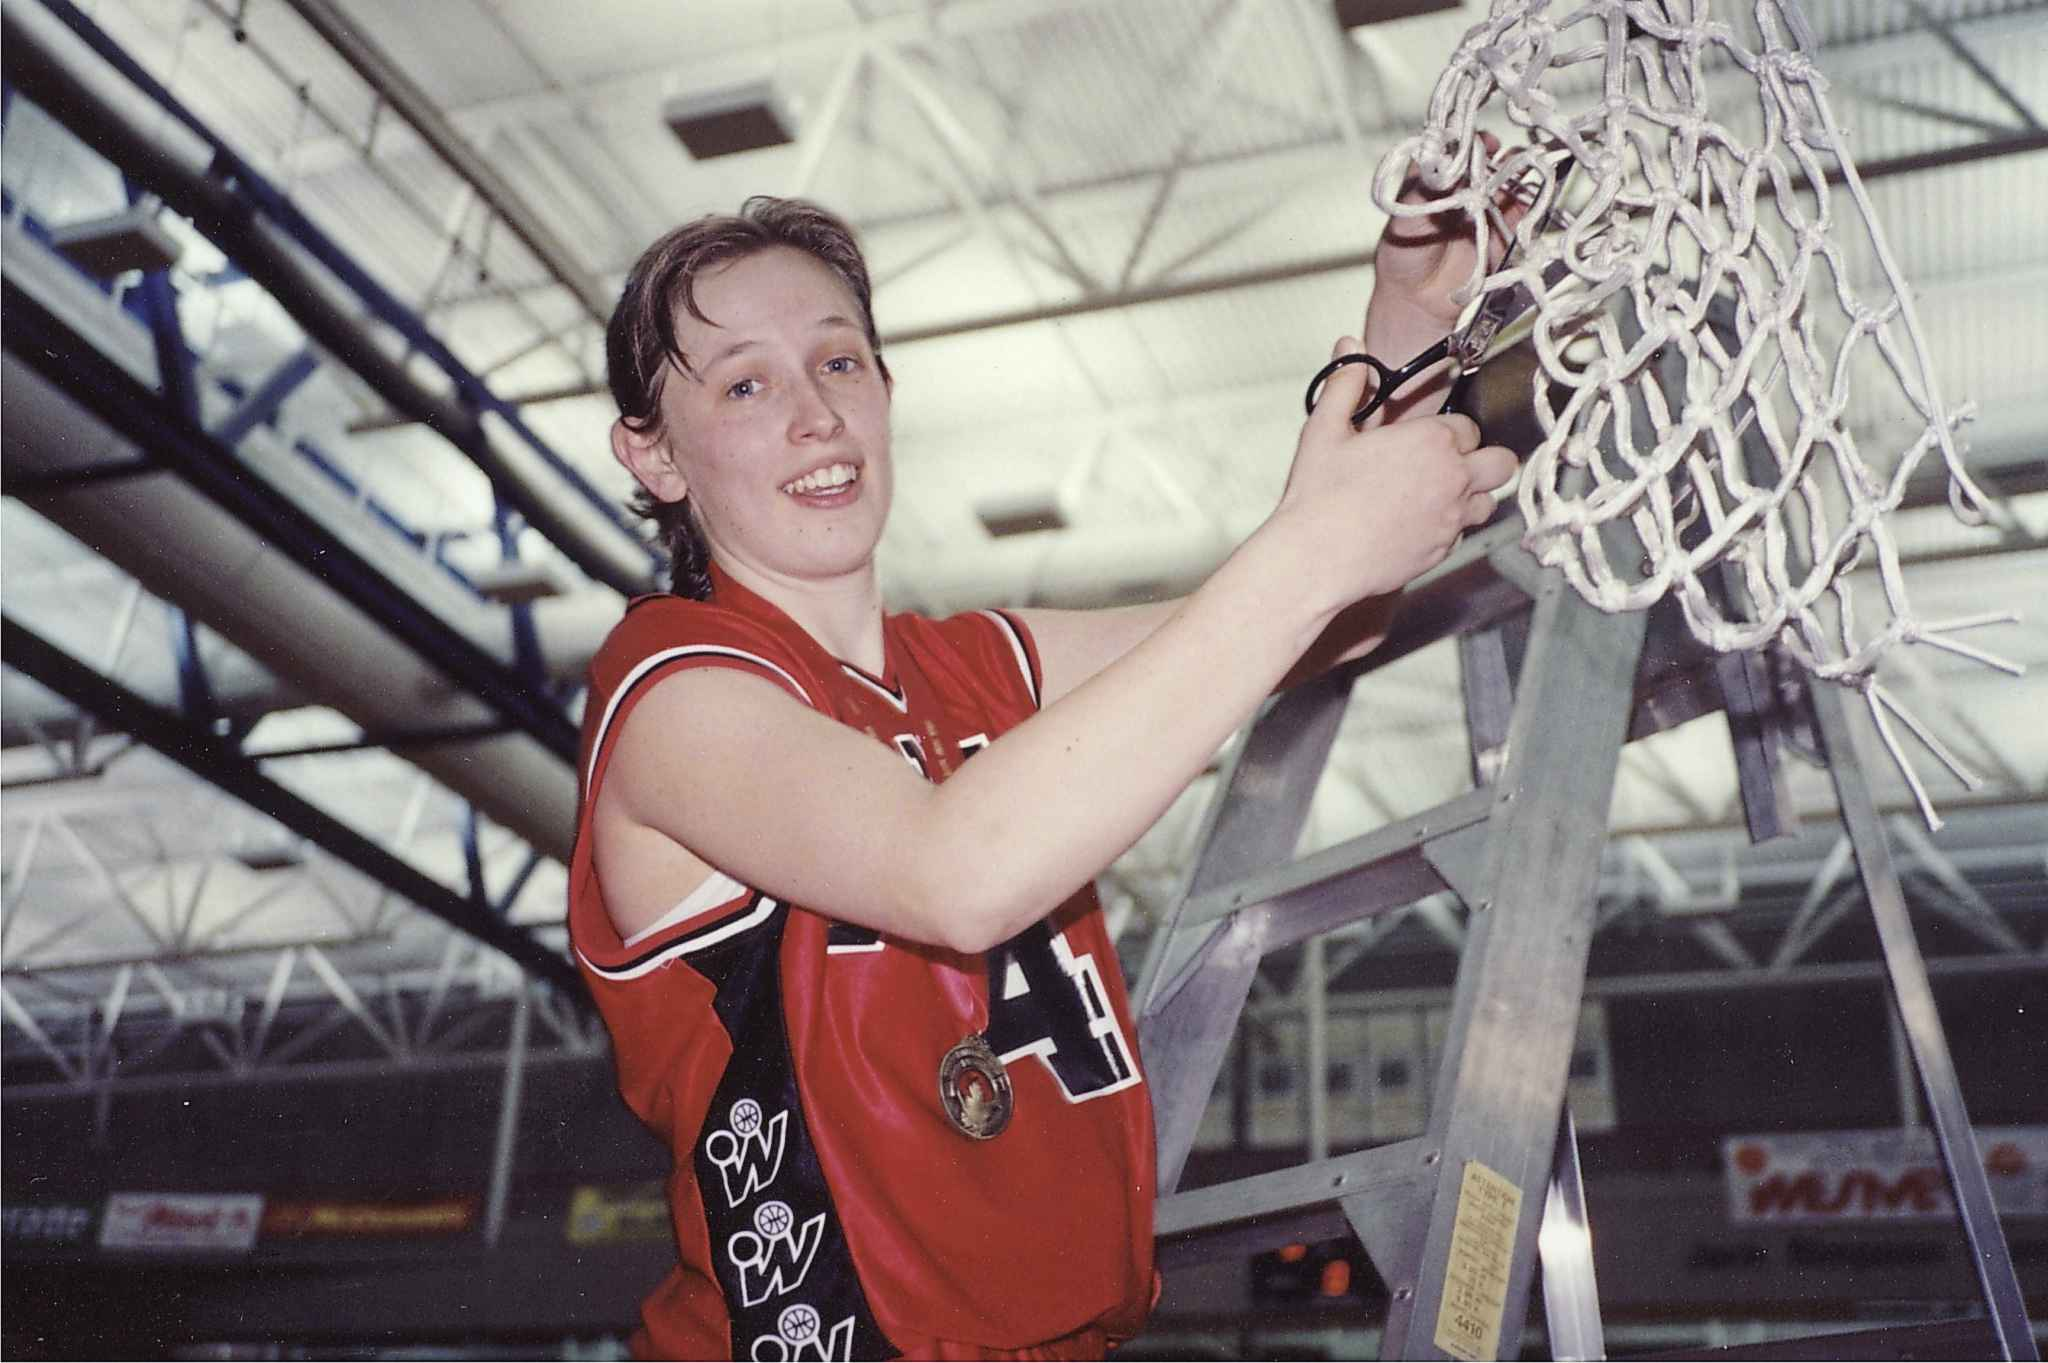 Sandra Carroll was named the CIAU Player of the Year for three consecutive years from 1993-95.